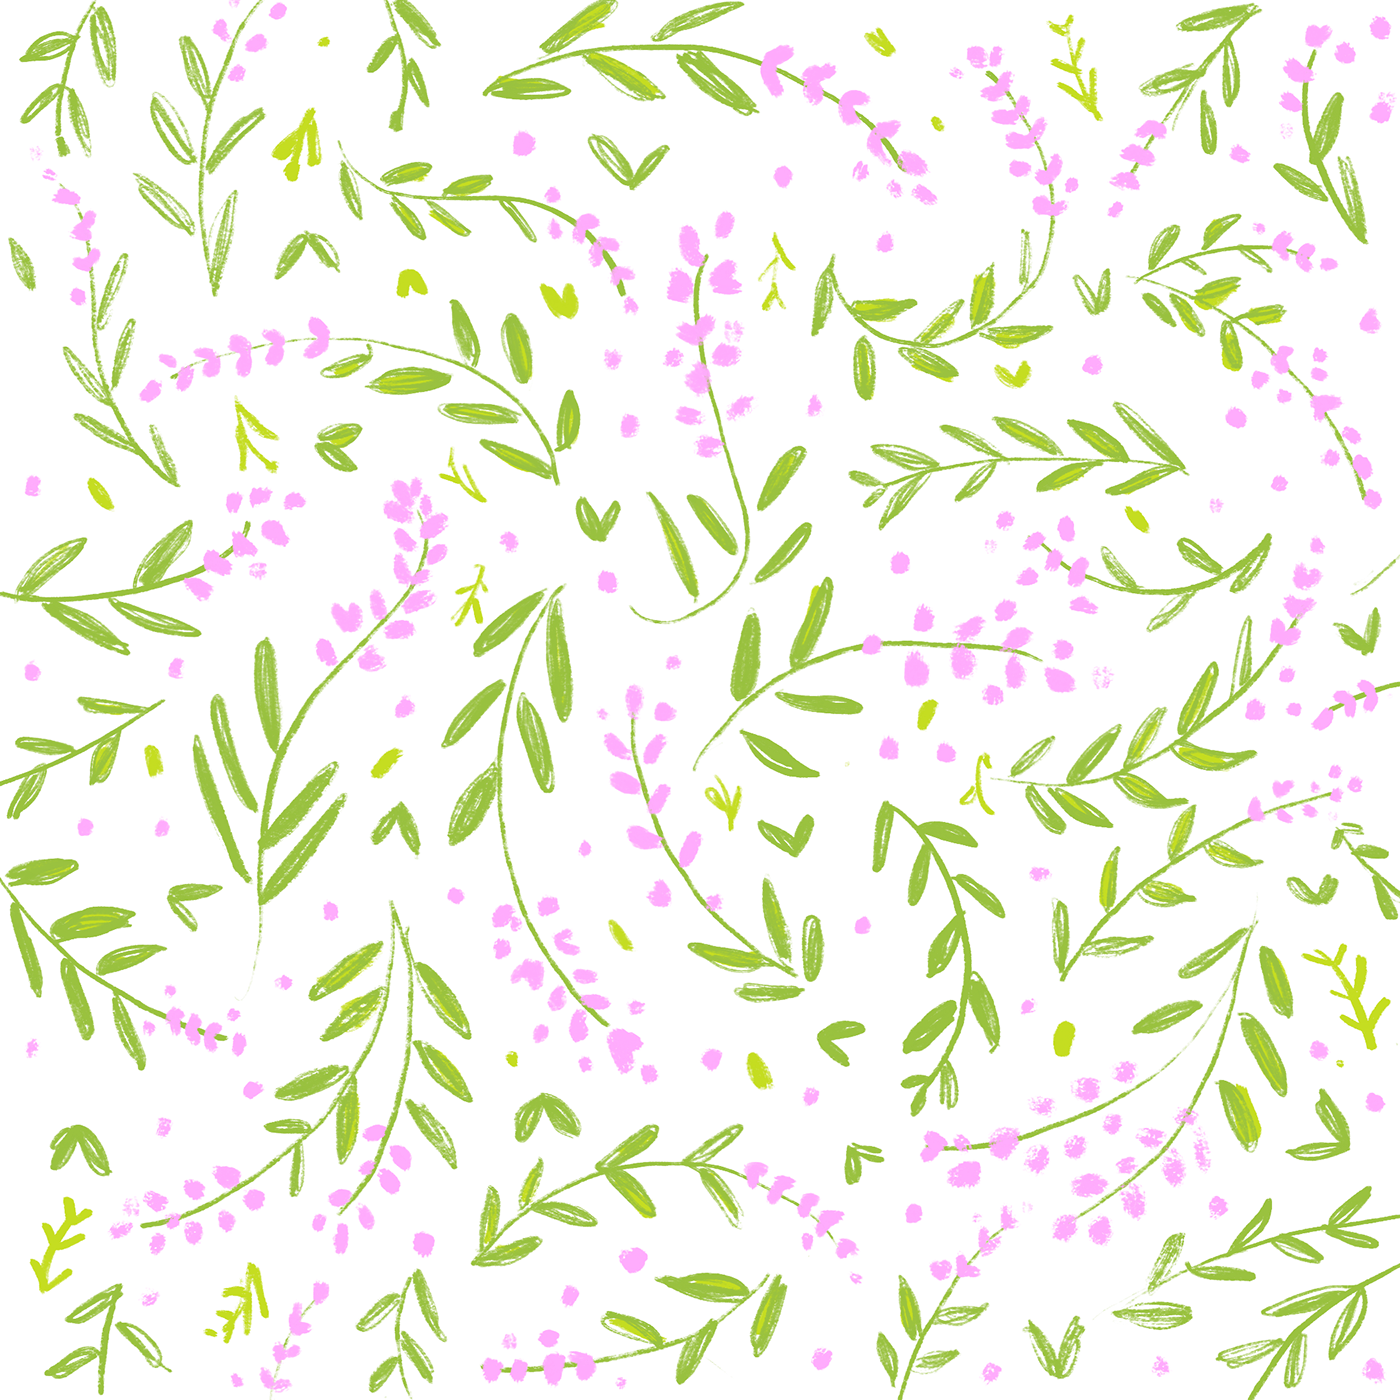 Bright and Bold - Summer Floral Pattern Design on RISD ...